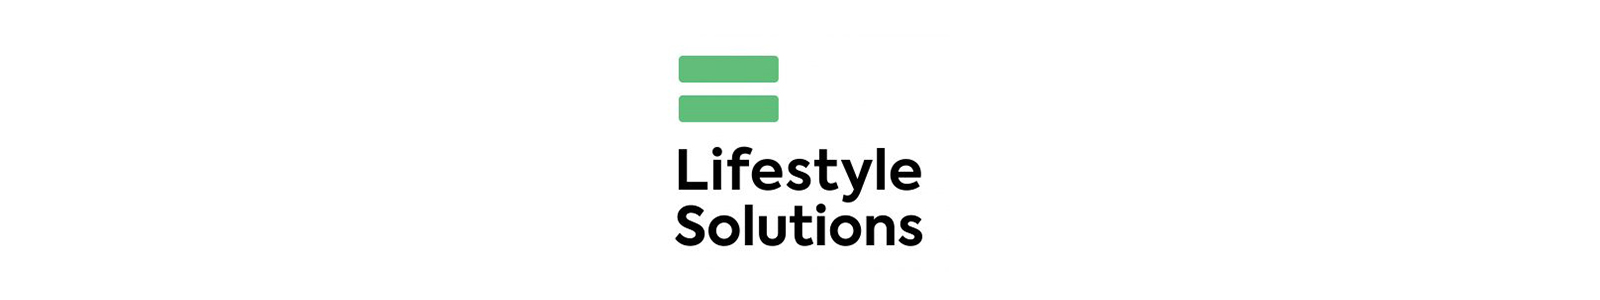 Lifestyle Solutions - Case Study